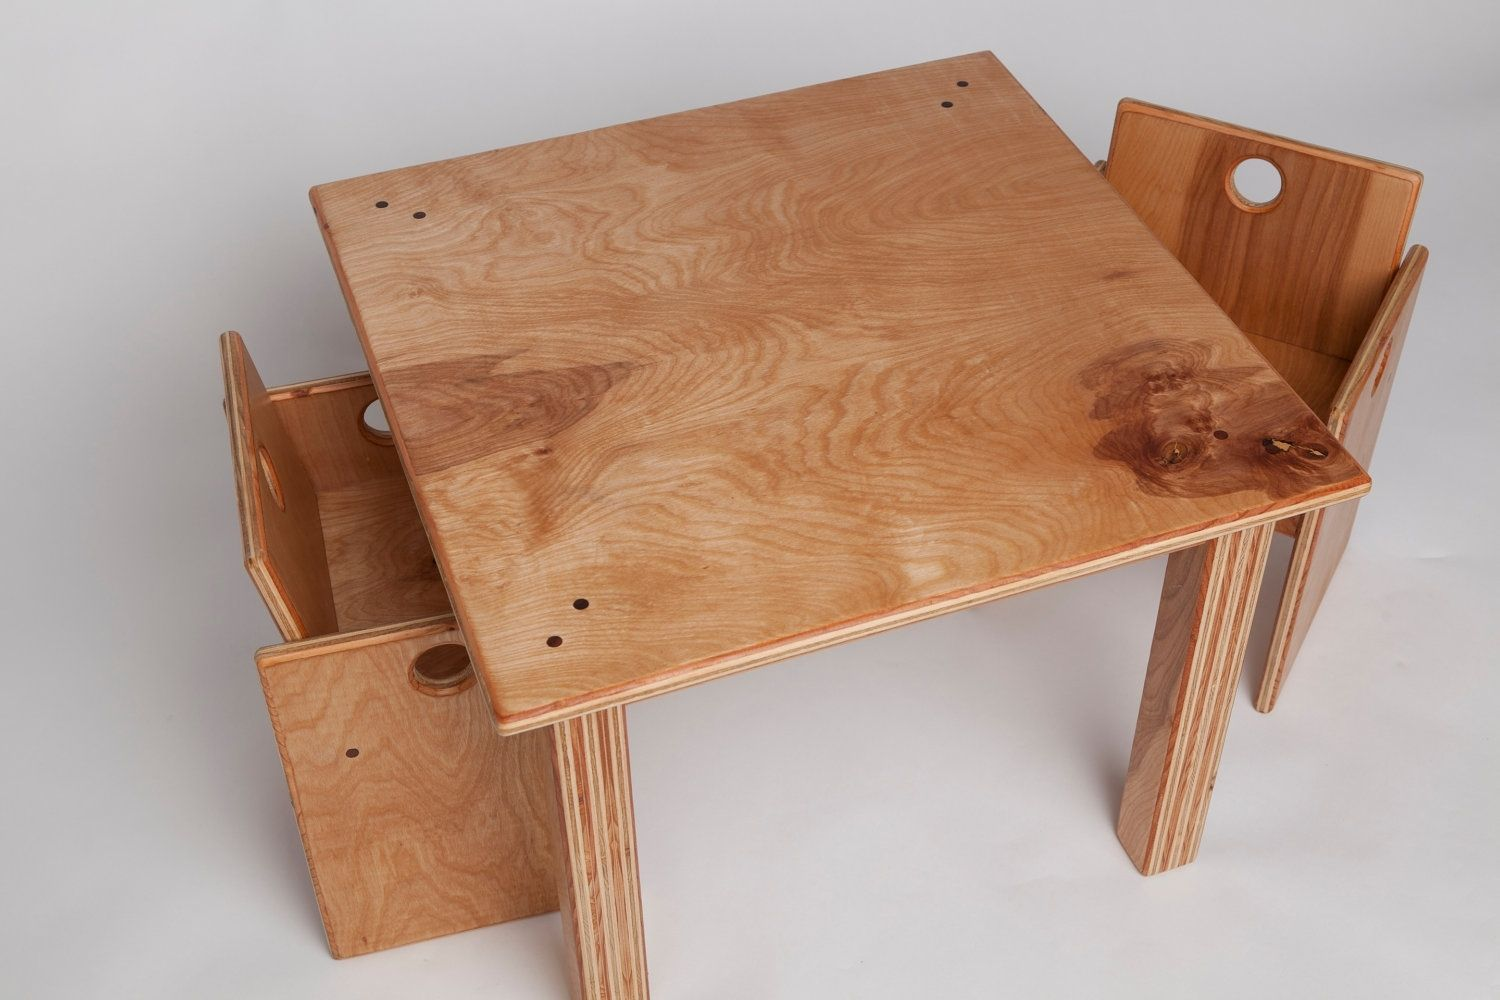 Custom Made Children\'s Wooden Table And Chair Set by Fast Industries ...